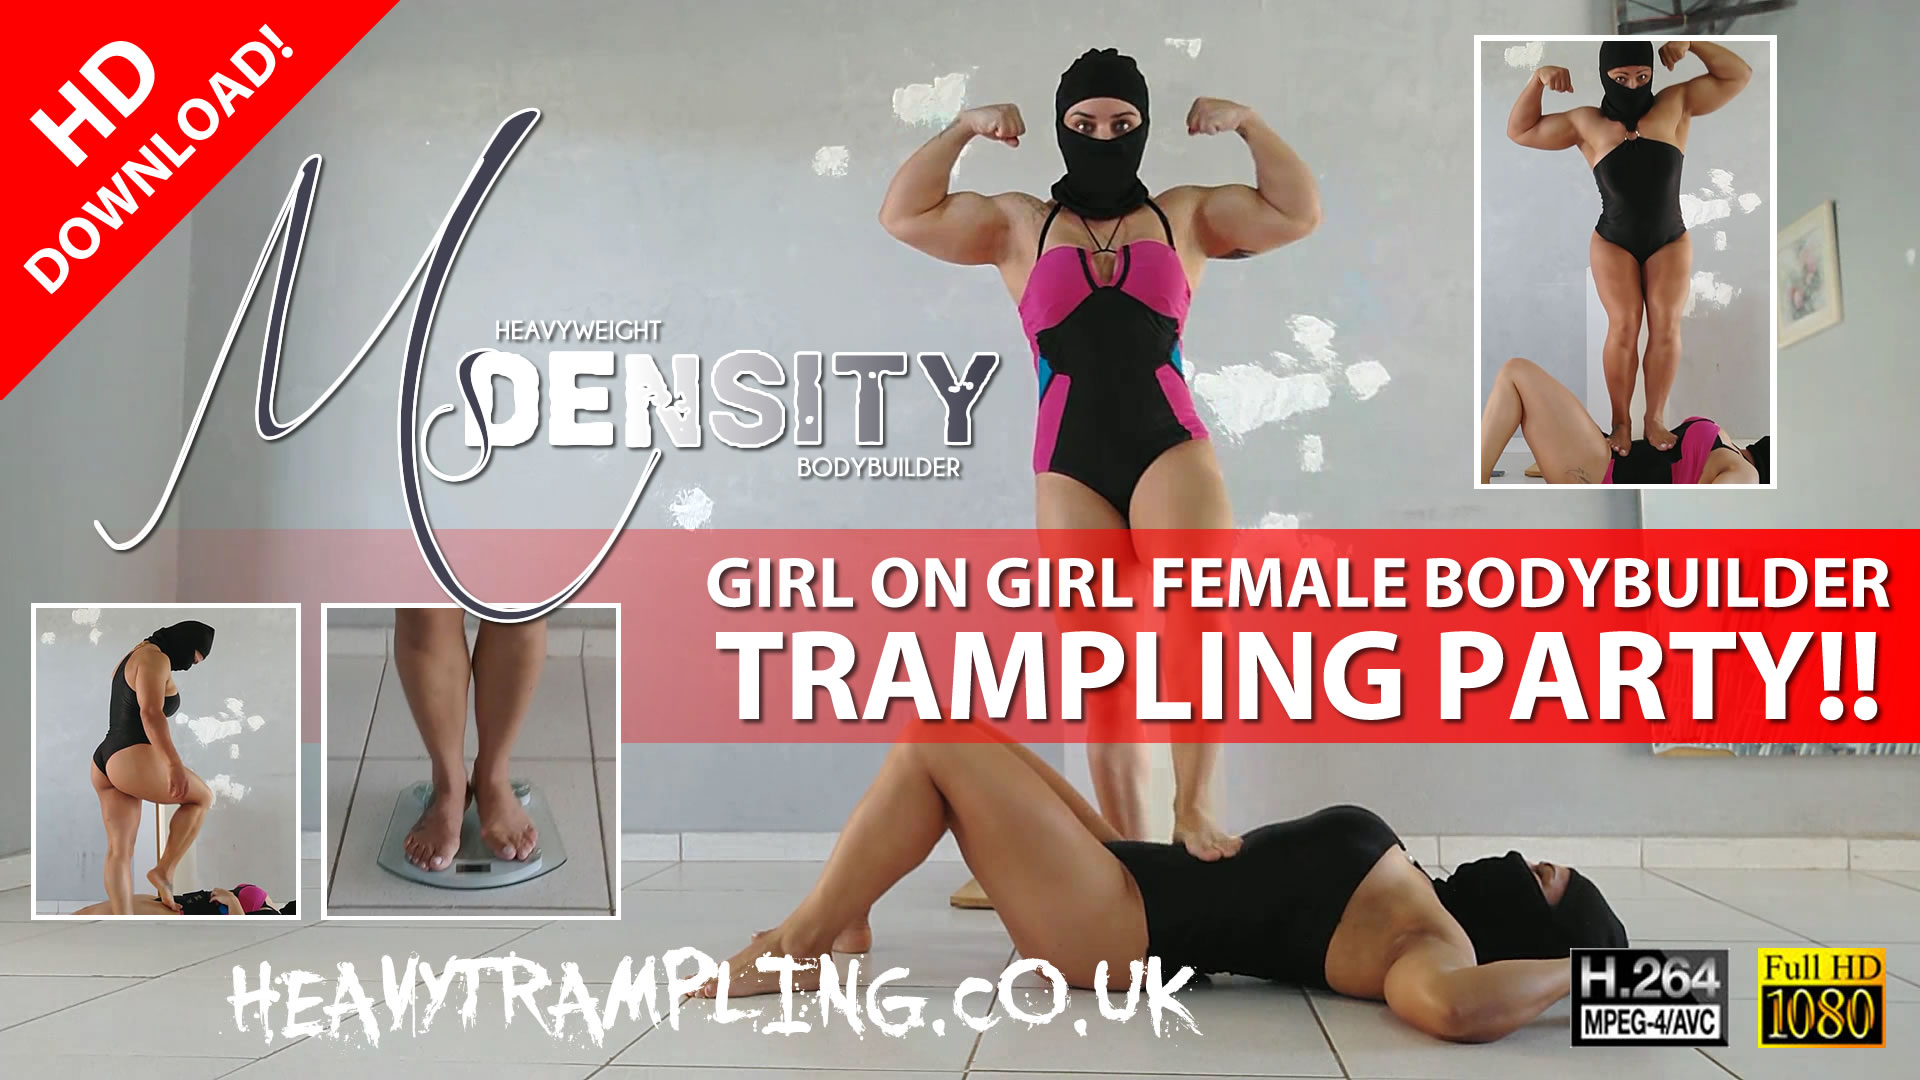 Ms Density Girl on Girl Female Bodybuilder Trampling Party